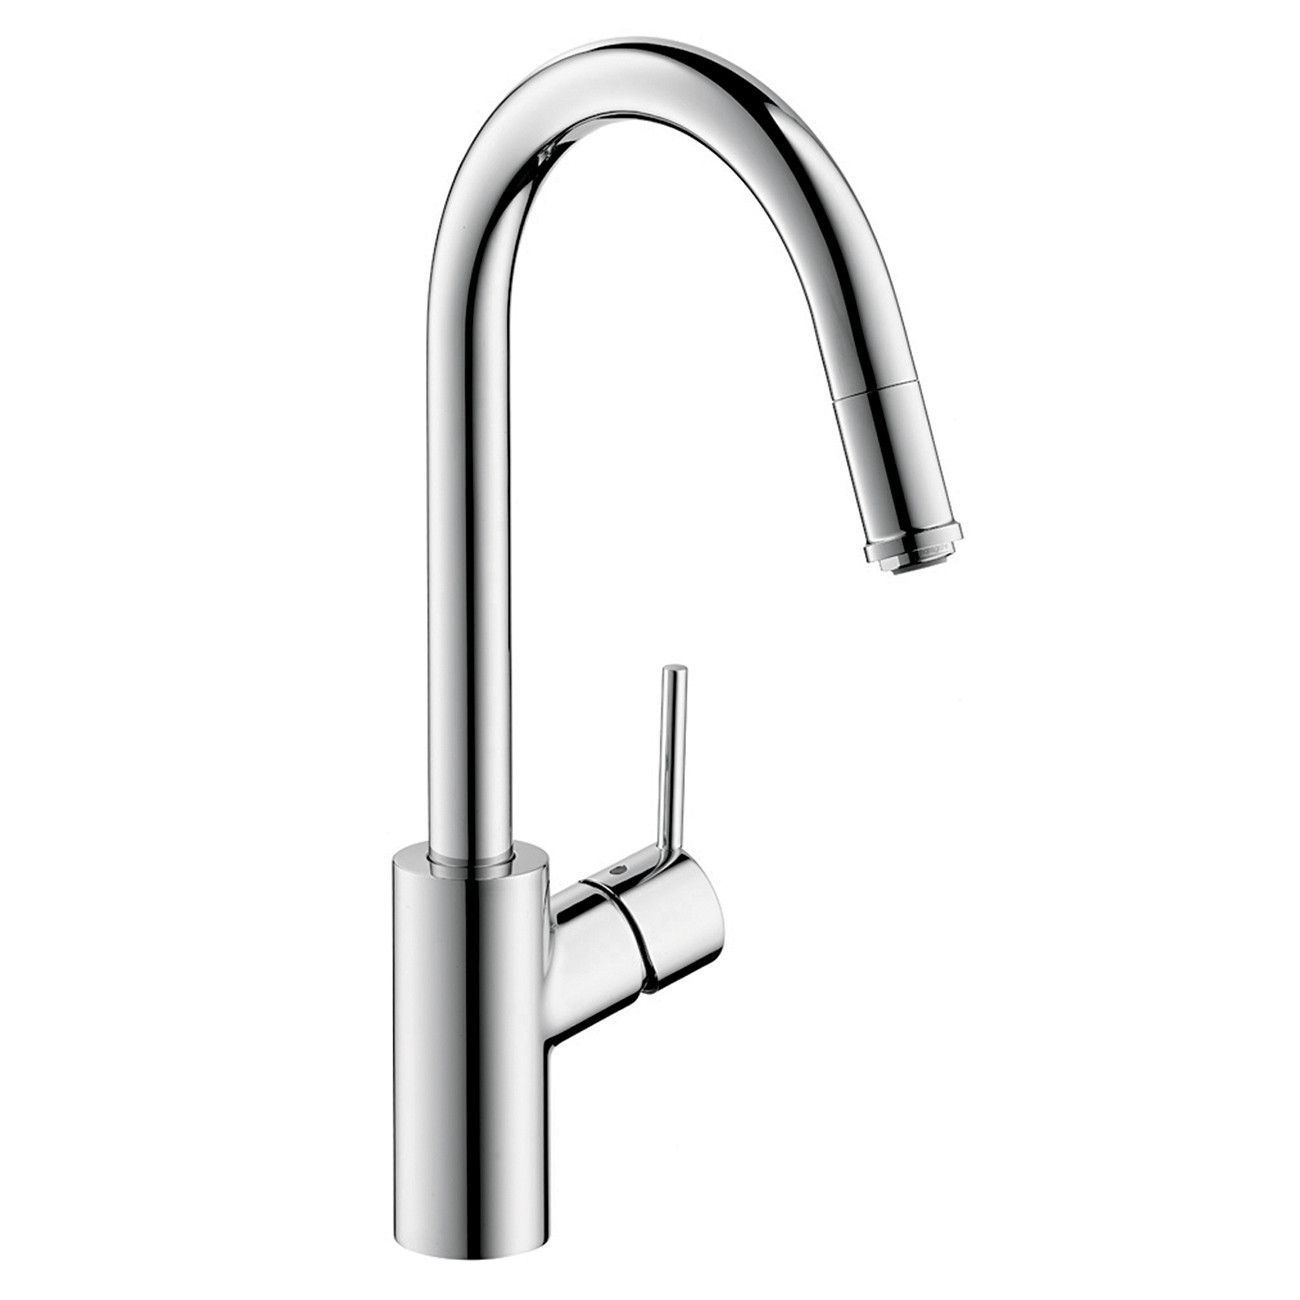 Hansgrohe 14872001 Chrome Talis S Pull-Down Kitchen Faucet with High ...